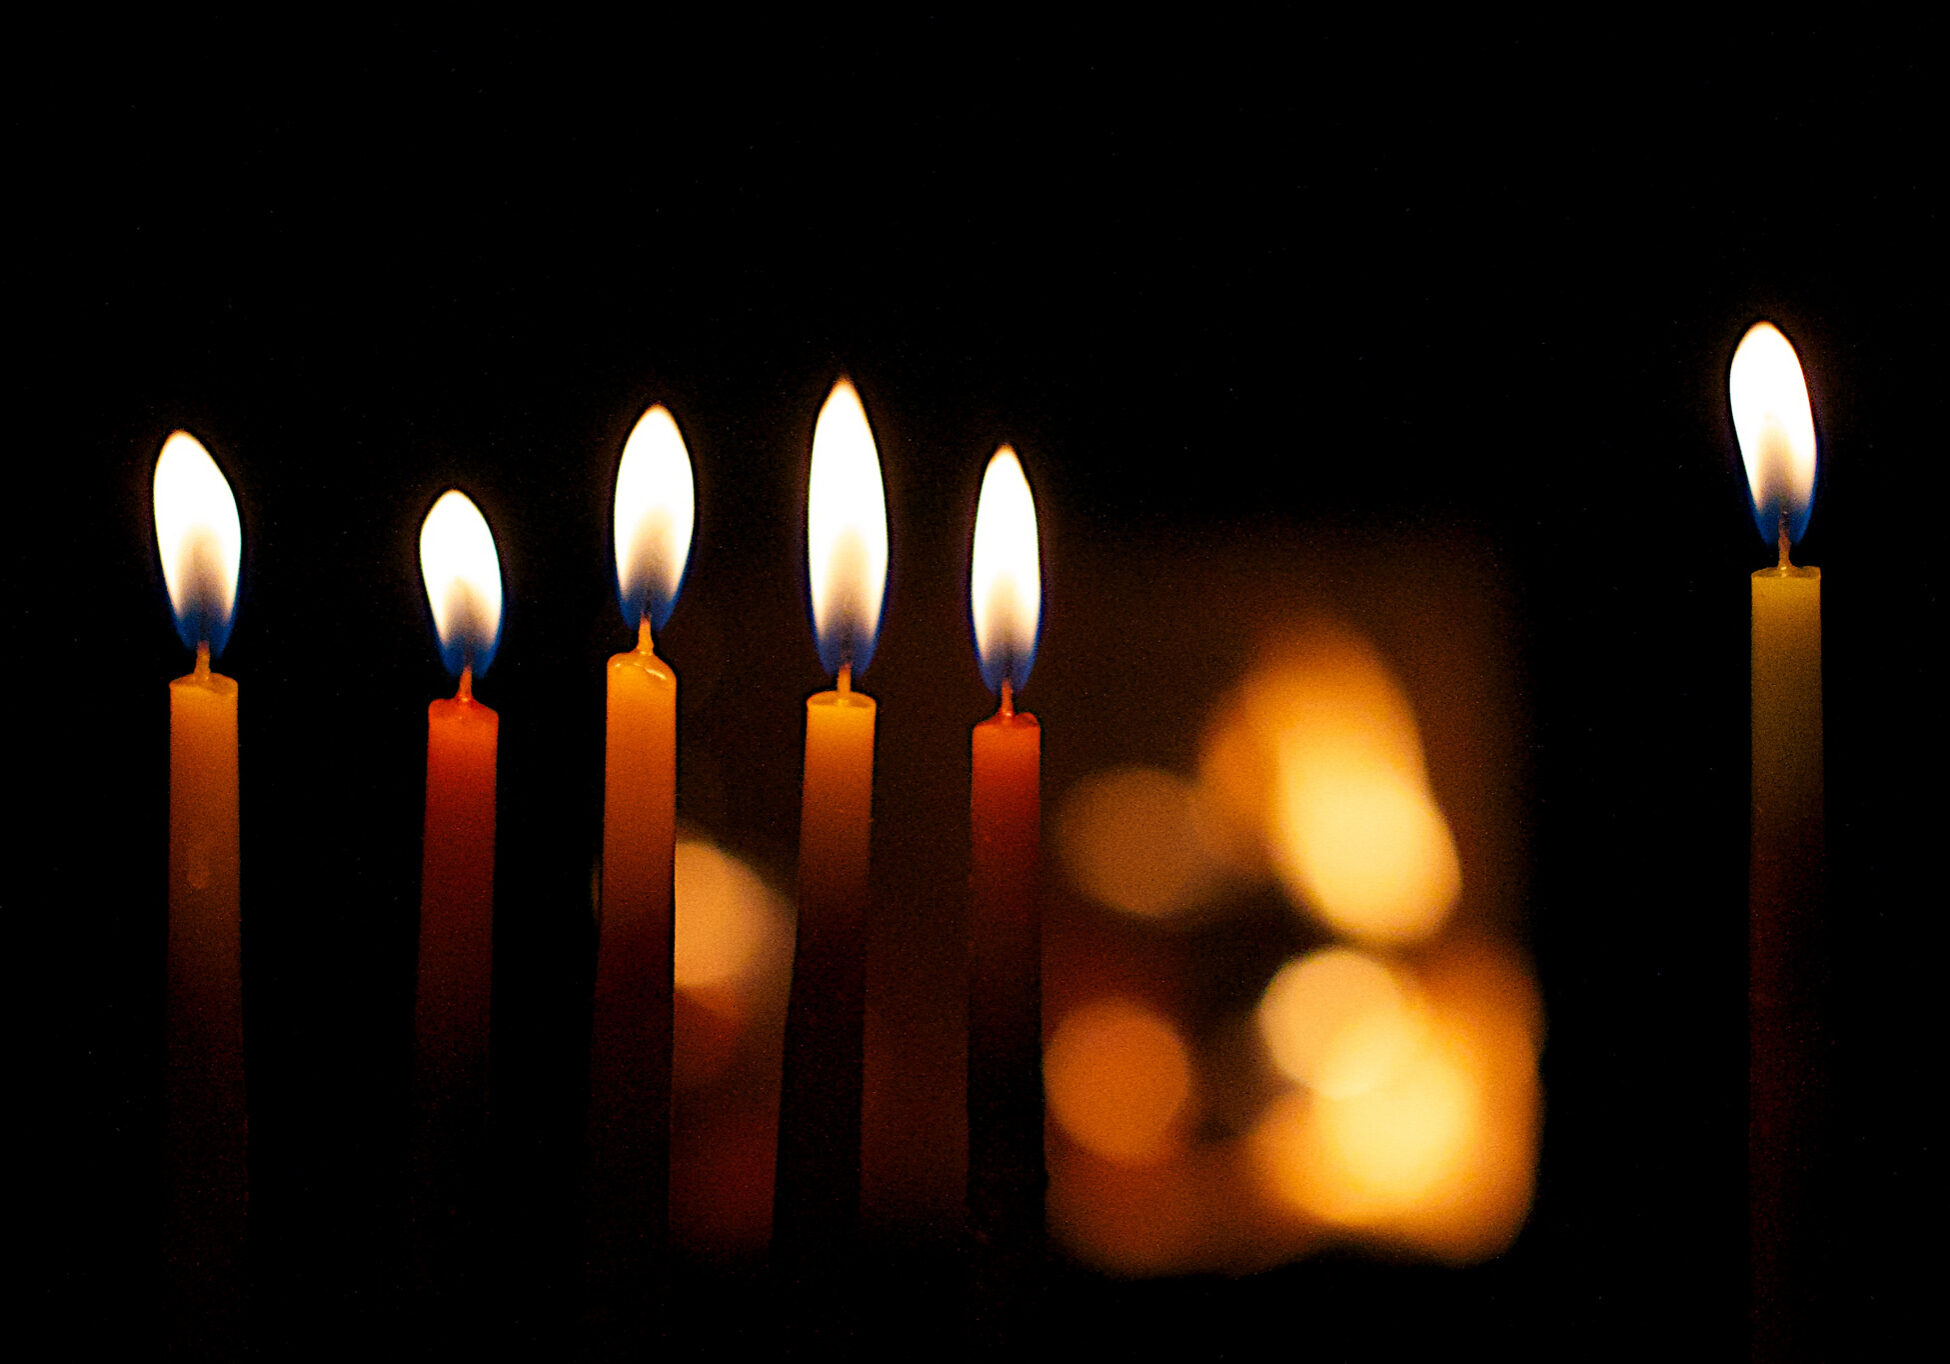 candle light by alan levine on flickr public domain